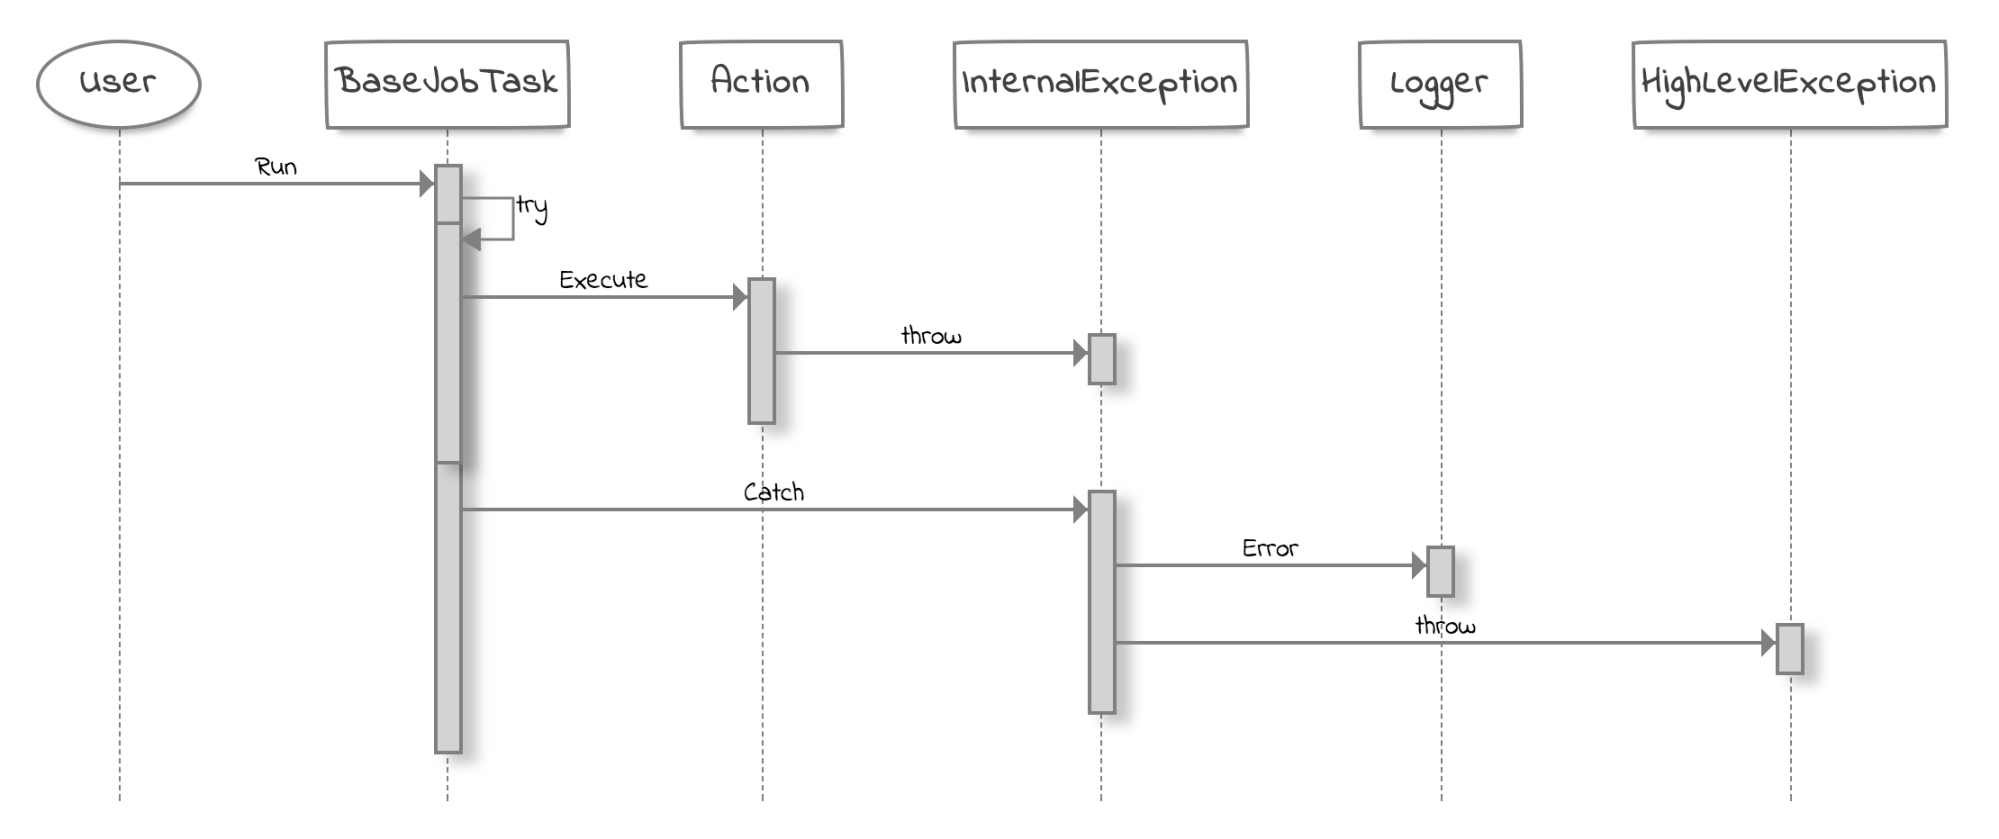 hight resolution of a typical exception handling logic